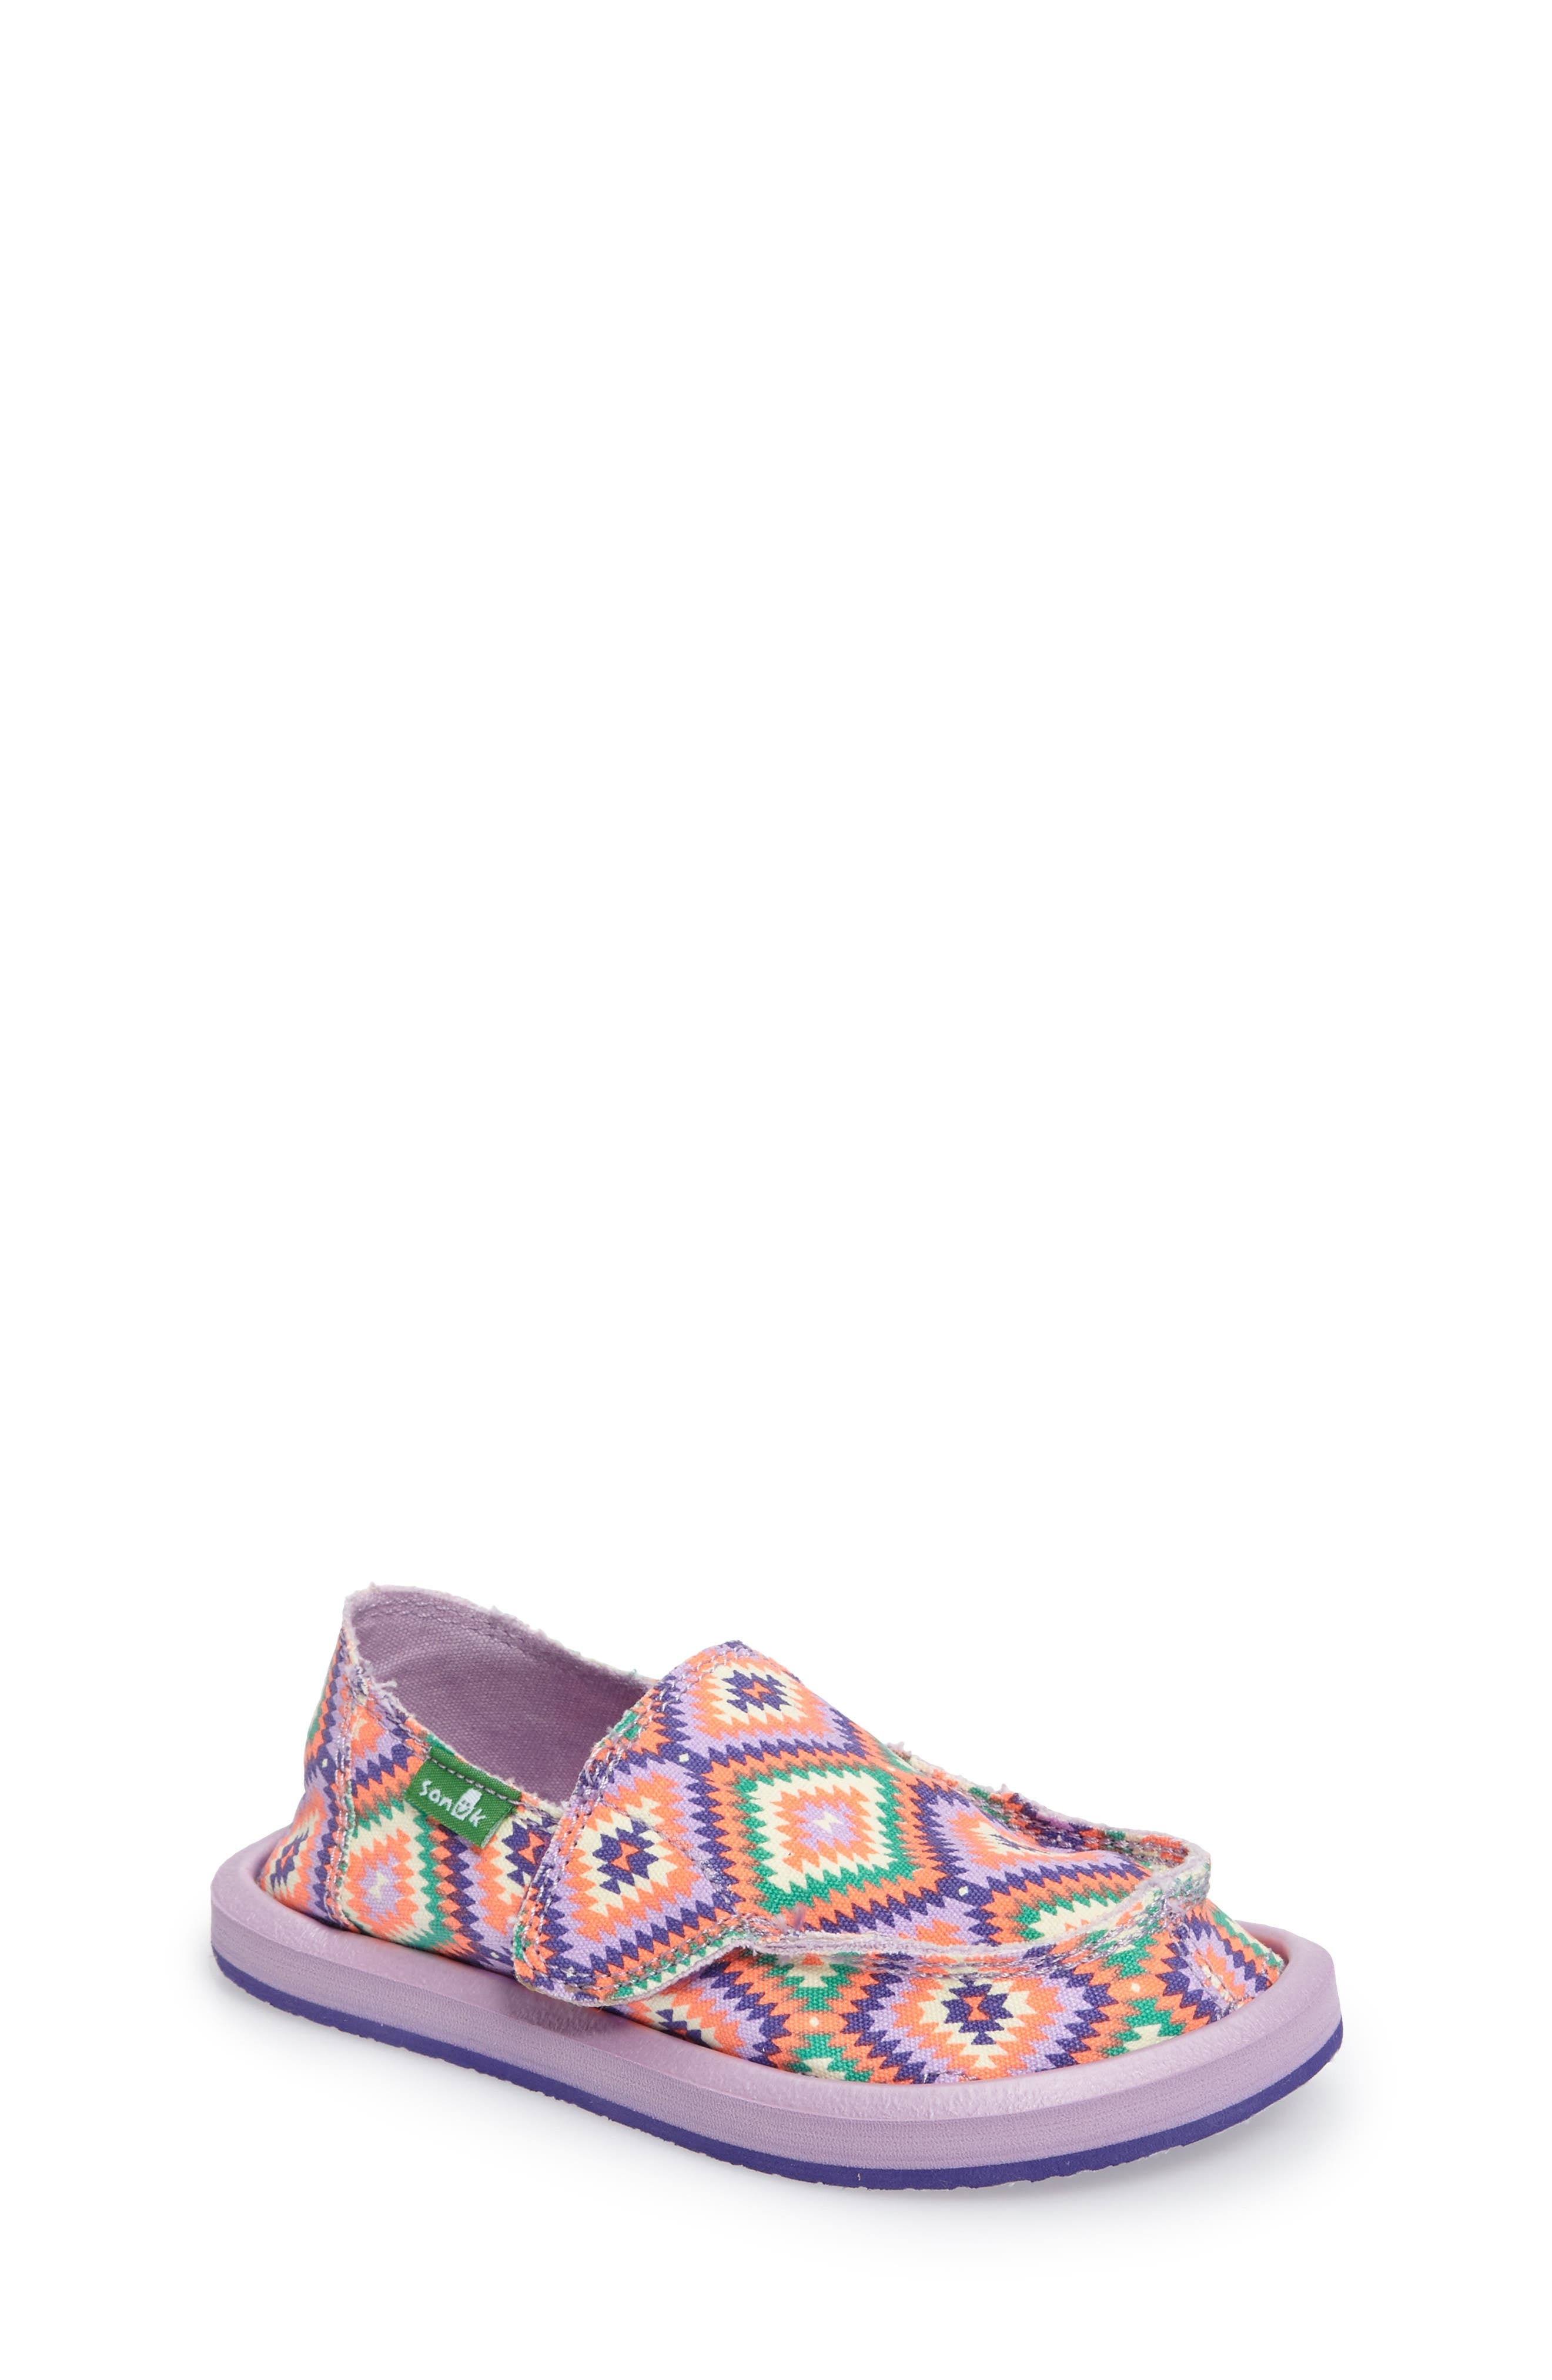 Sanuk Donna Slip-On Sneaker (Toddler, Little Kid & Big Kid)